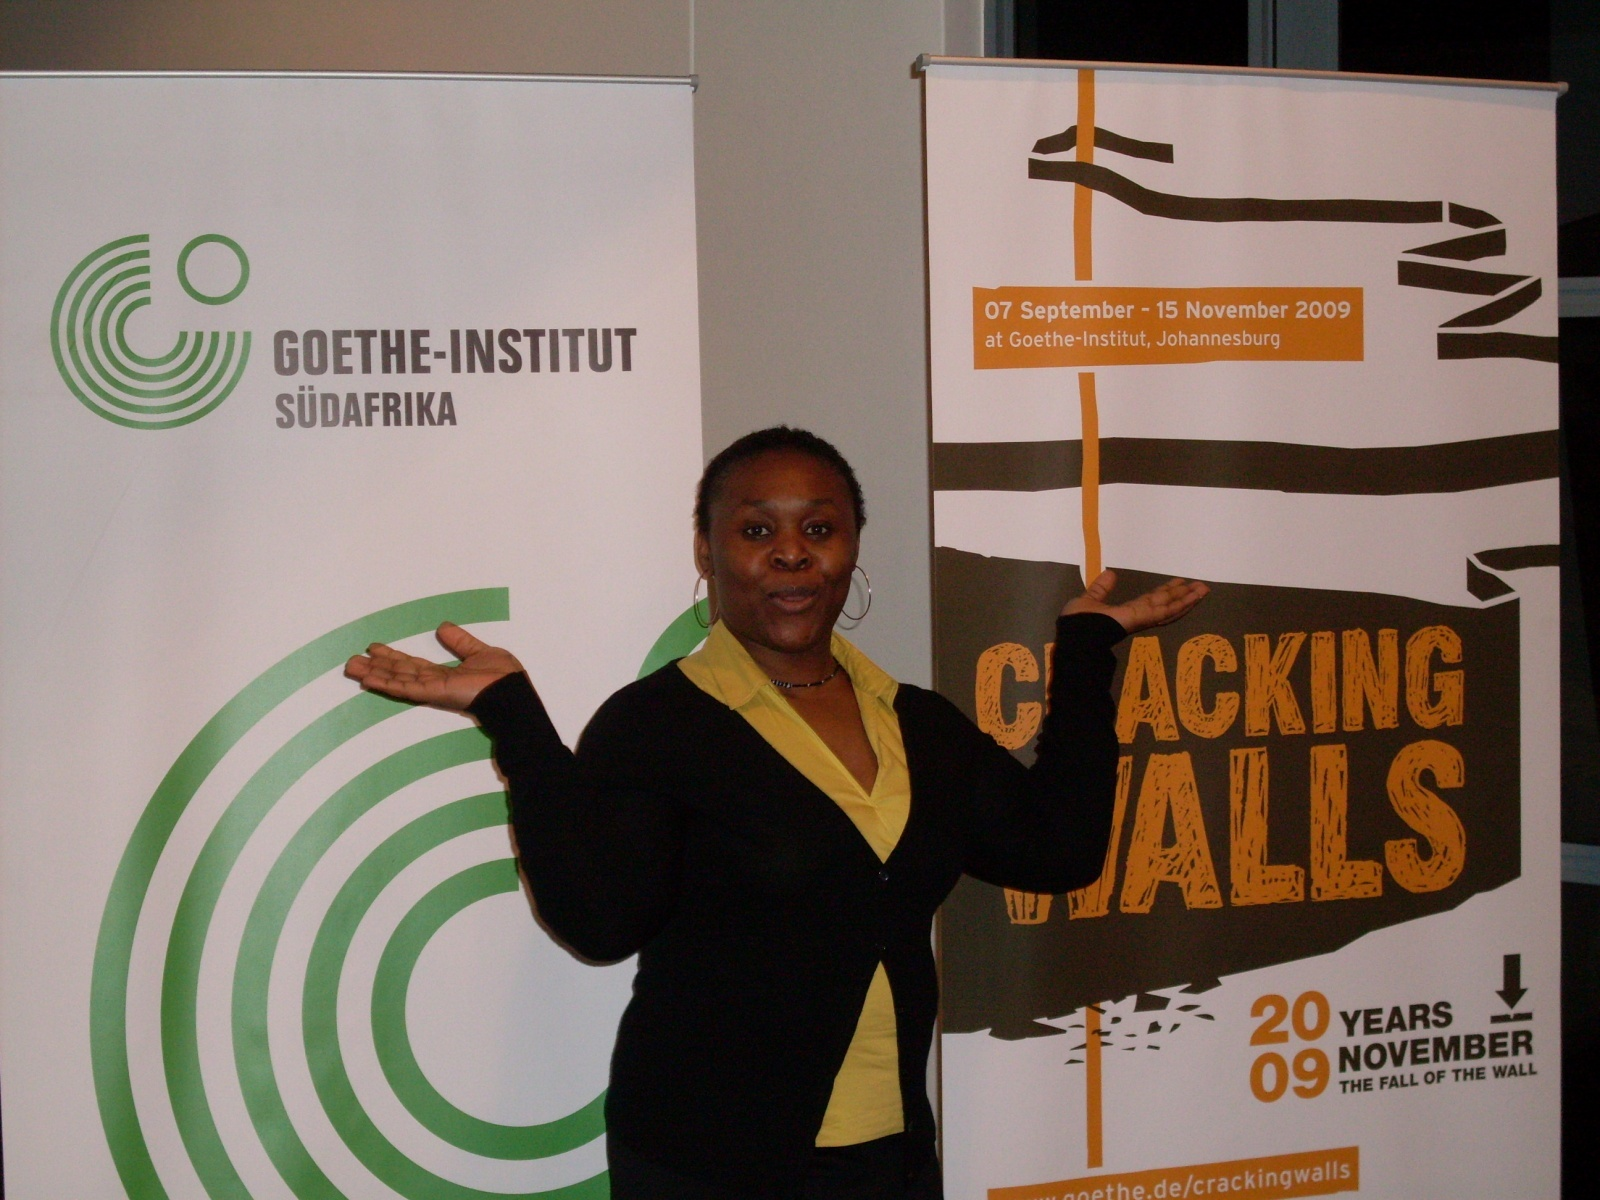 AGGN visiting the Goethe Institute in Johannesburg/South Africa